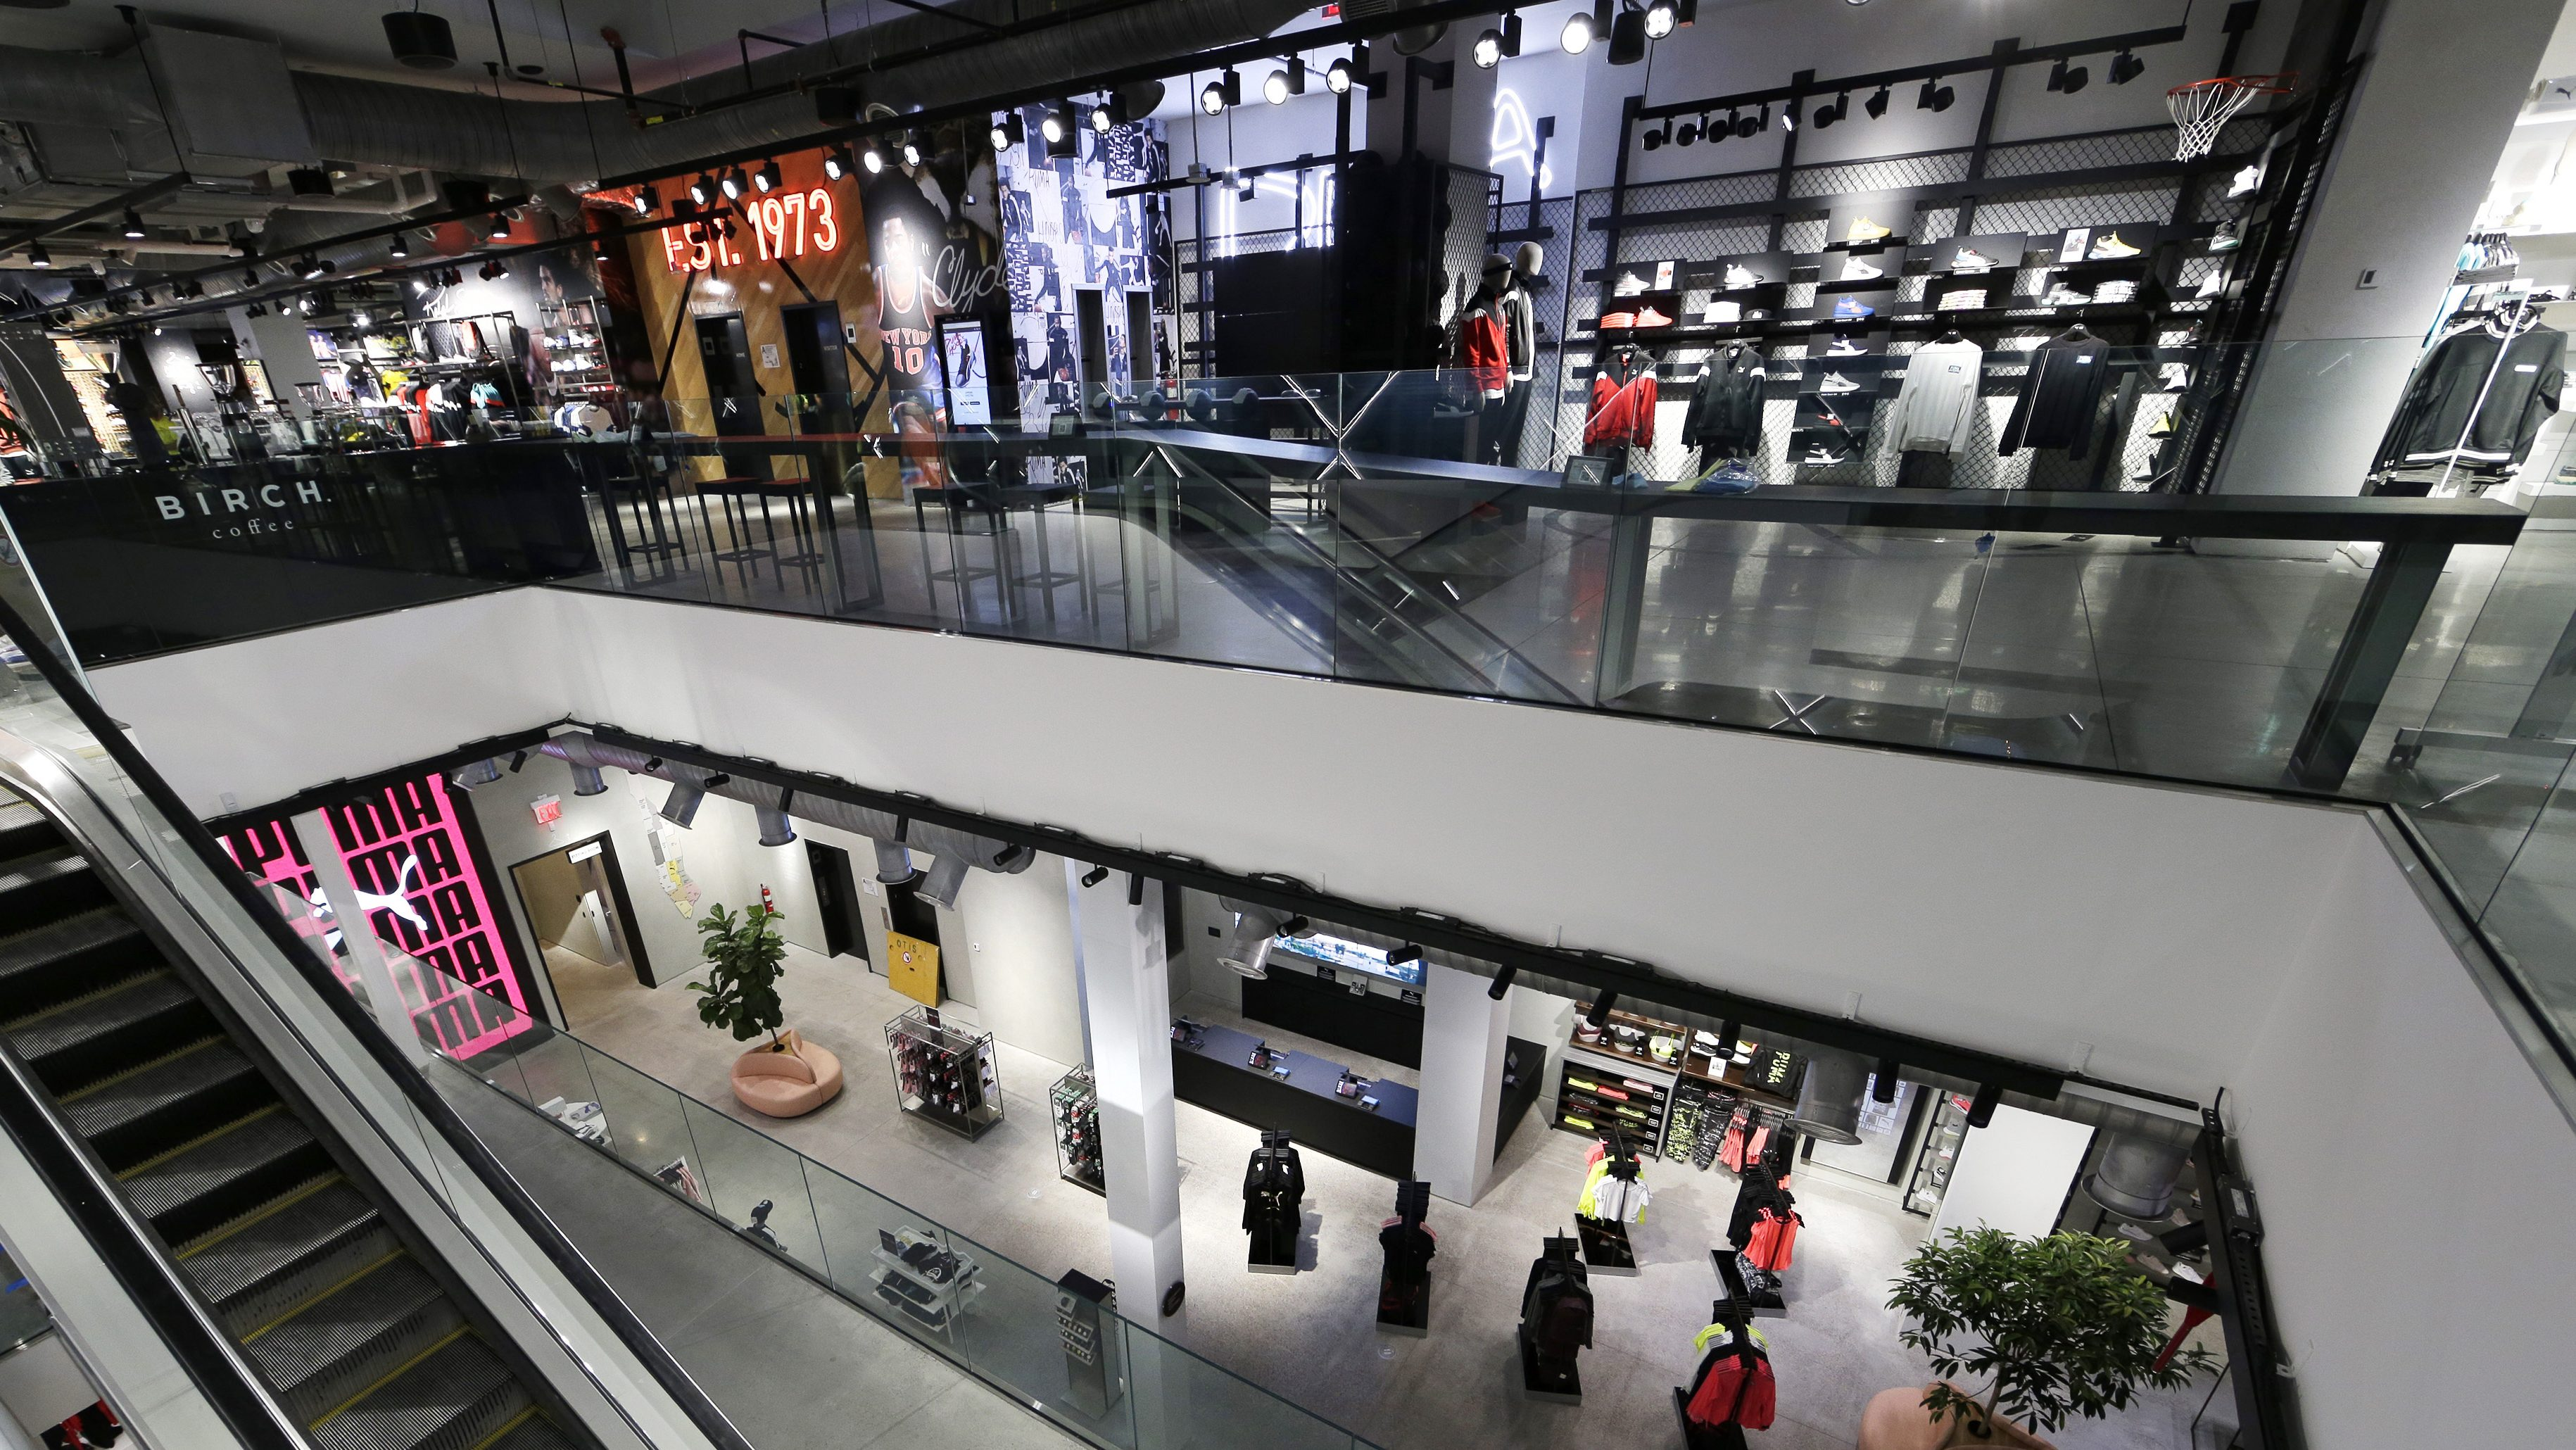 A view of the interior of the Puma store